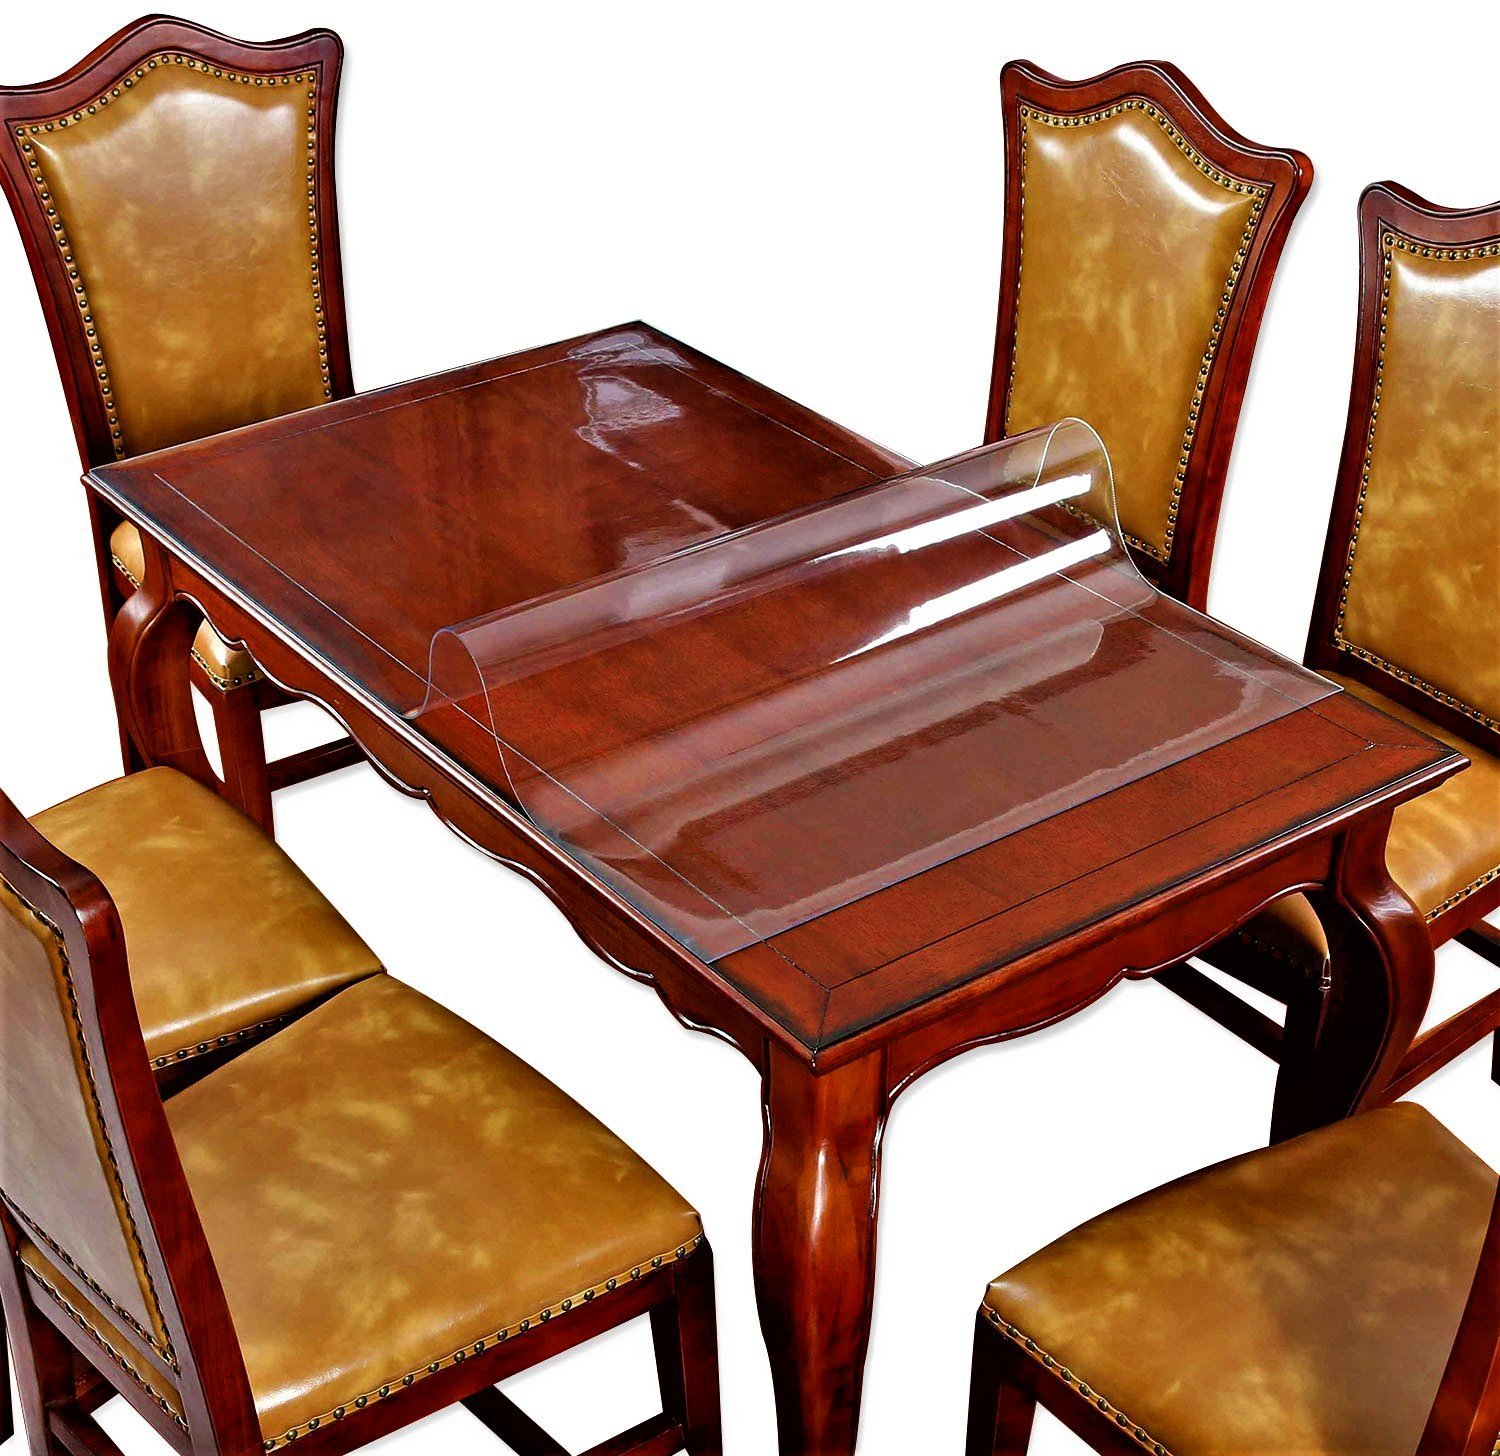 Wood Furniture Dining Coffee Table Protector for Large Pub Bar Desk Tabletop Countertop Topper Clear Plastic Tablecloth Placemats Protective Cover Easy Clean Wipeable PVC Vinyl 36'' x 108 Inch 9ft